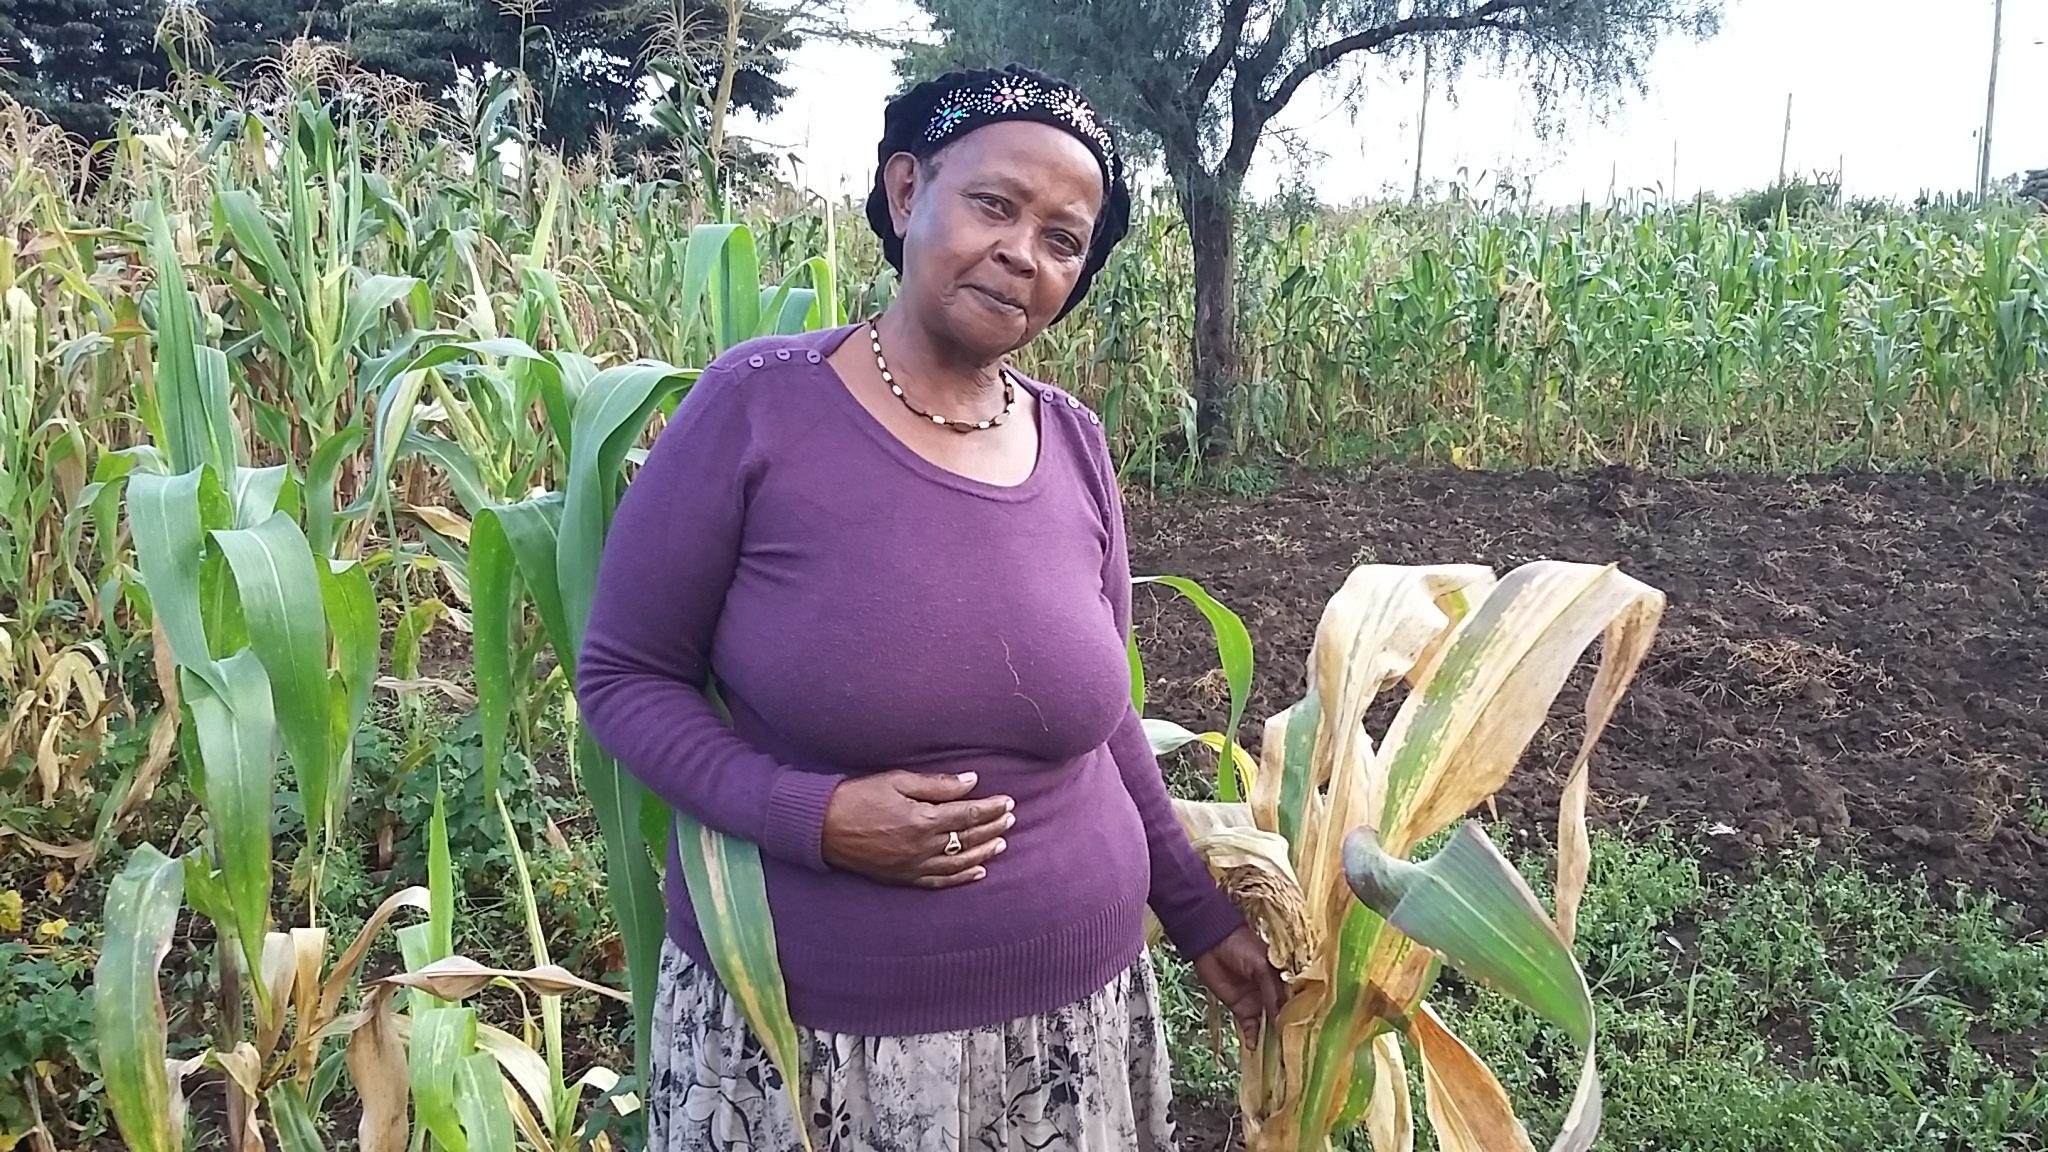 Purity has journeyed with women farmers in her village for last three years helping them access land to plant food for their families. Photo: B.Wawa/CIMMYT.